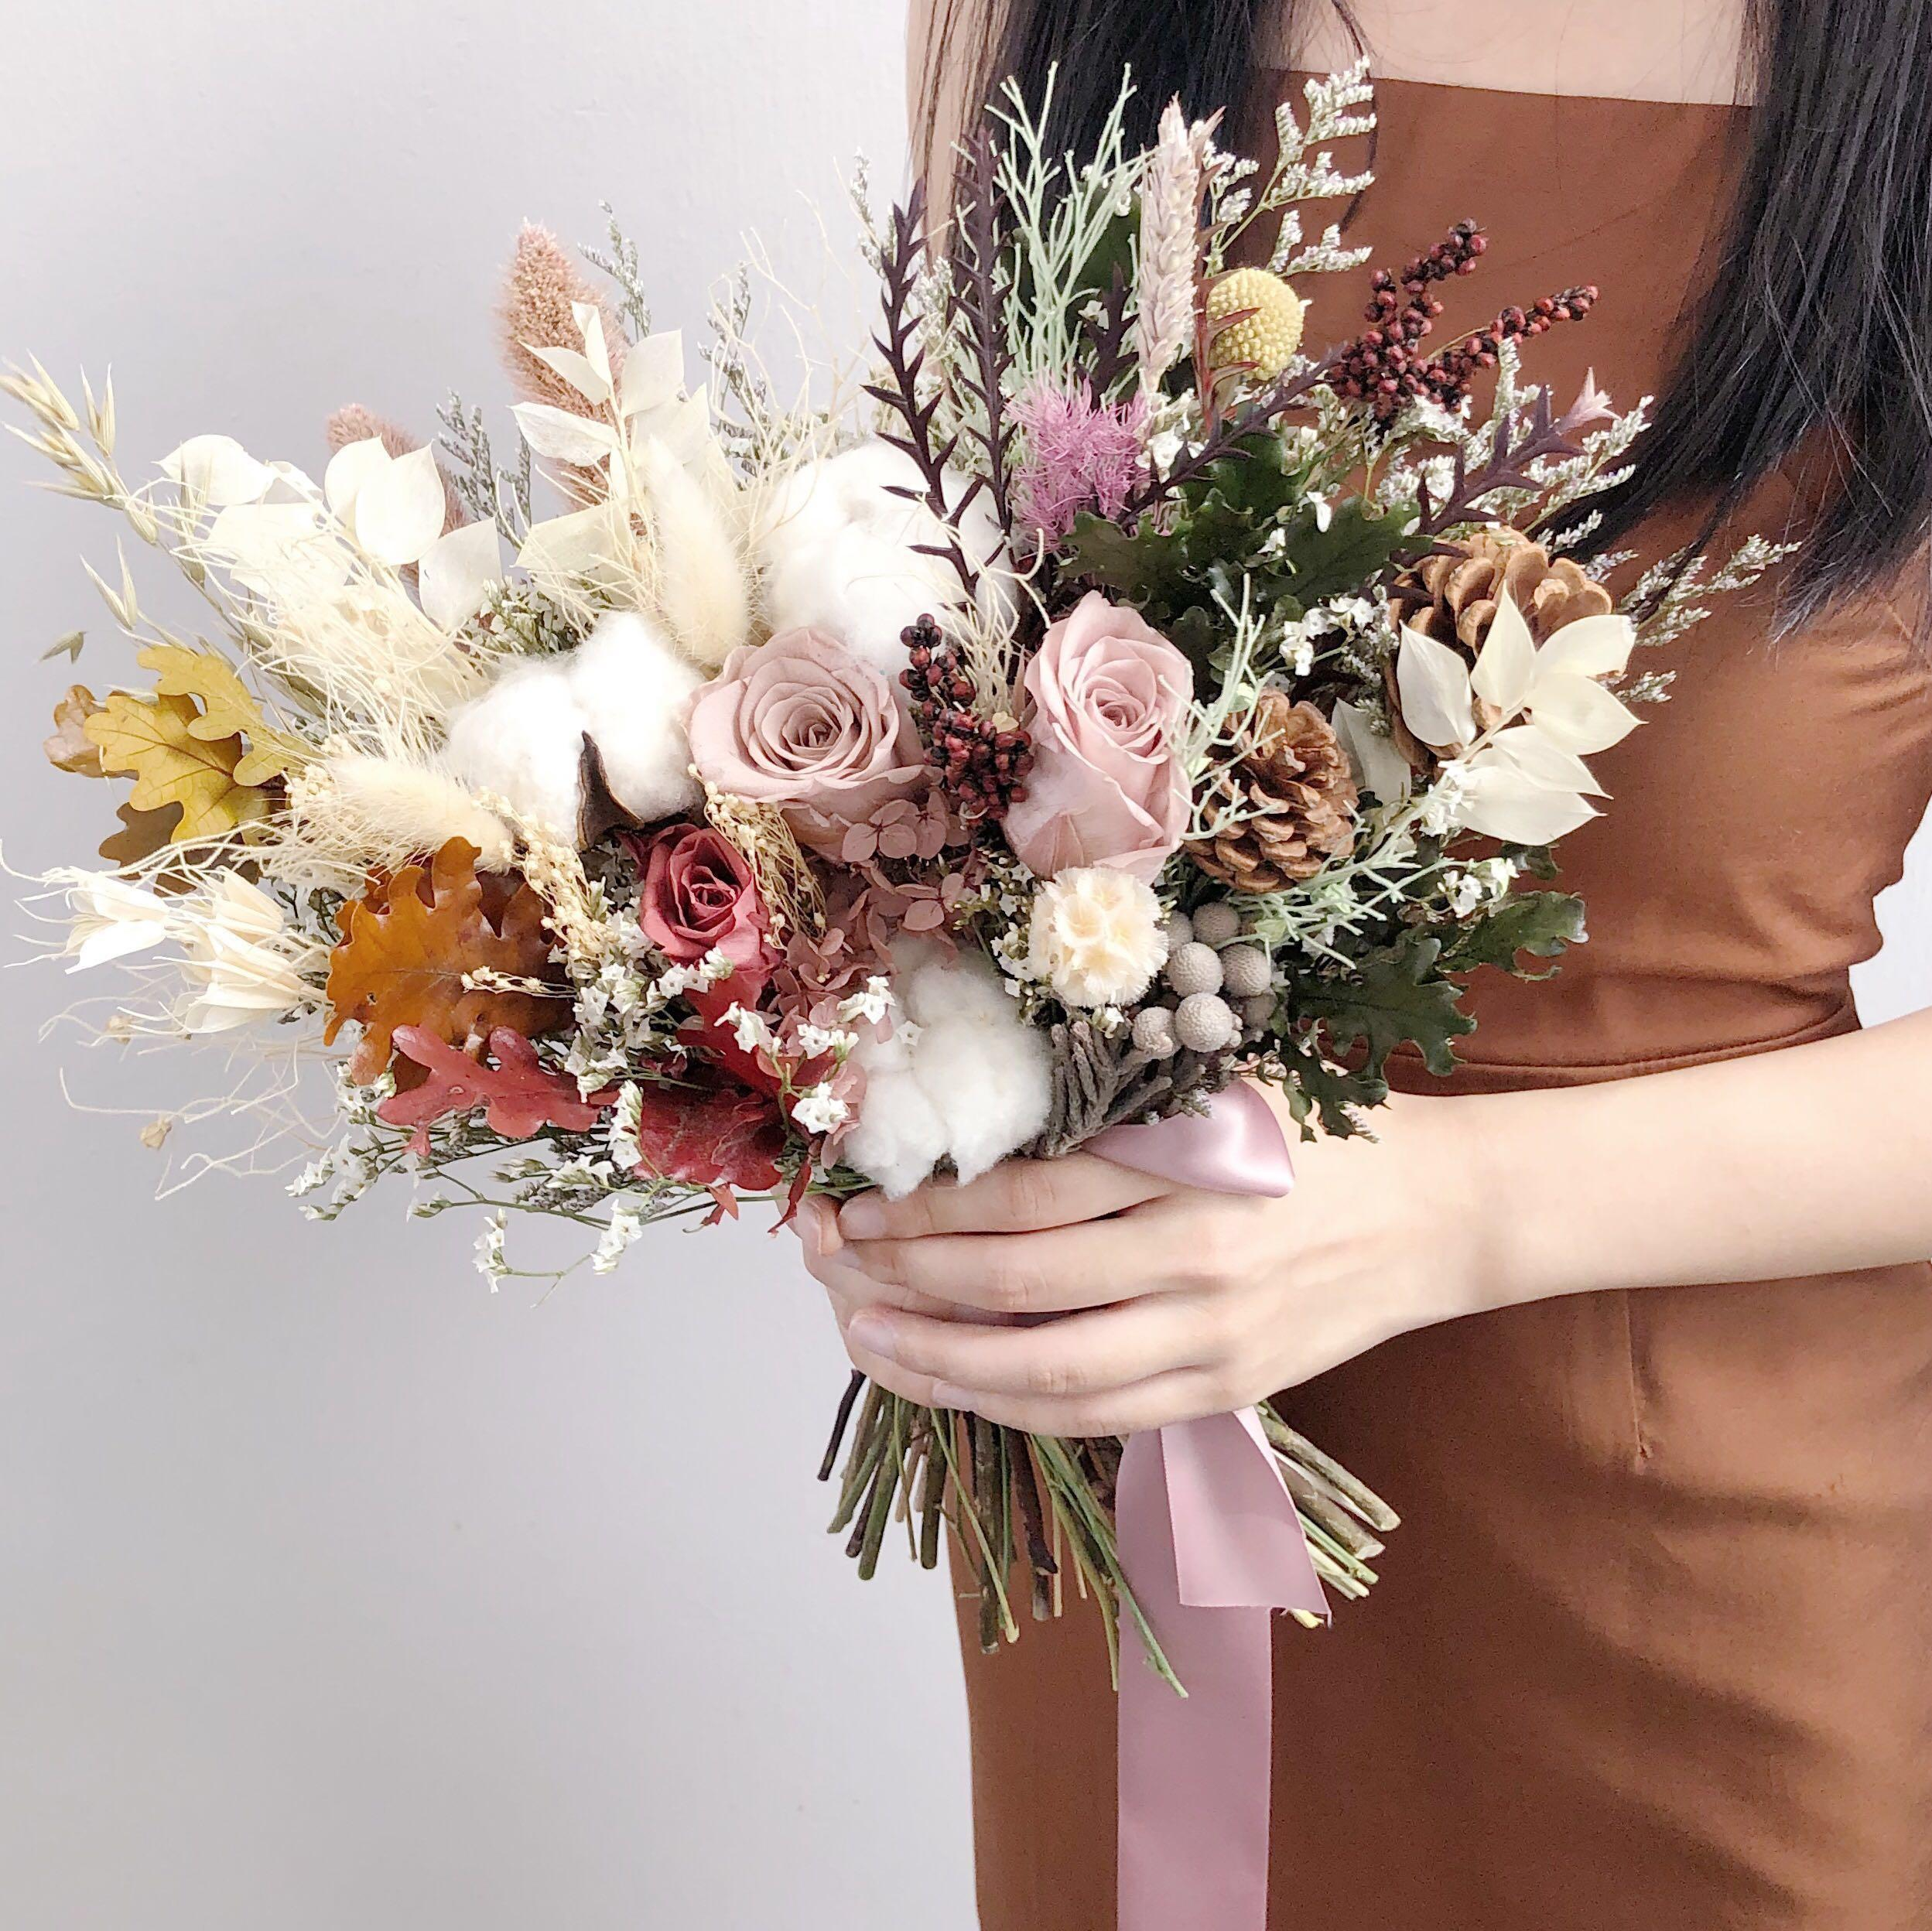 Preserved Bridal Bouquet Wedding Bouquet Hand Bouquet Preserved Flower Rom Flower Dried Flower Bouquet Flower Delivery 新娘手捧花 手捧花 永生手捧花 鲜花运送 Gardening Flowers Bouquets On Carousell